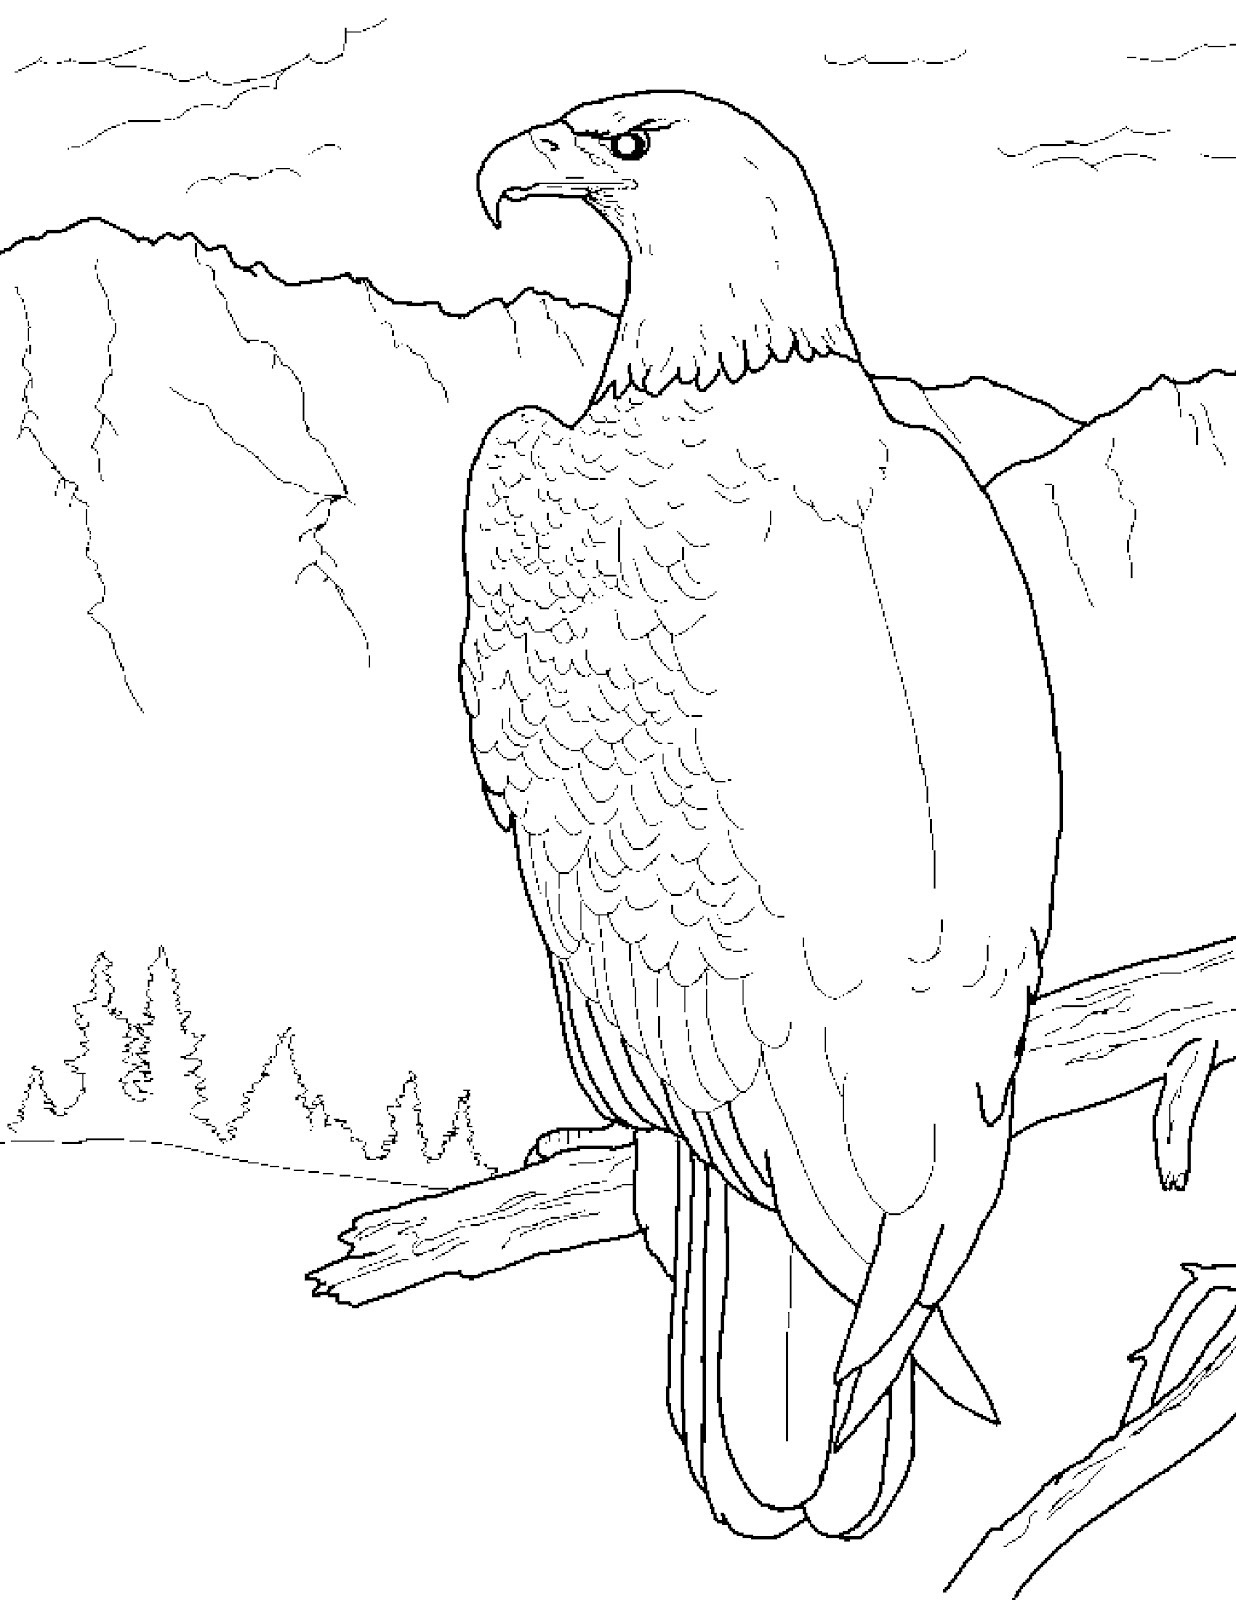 bald eagle coloring pages - American Bald Eagle Coloring Page